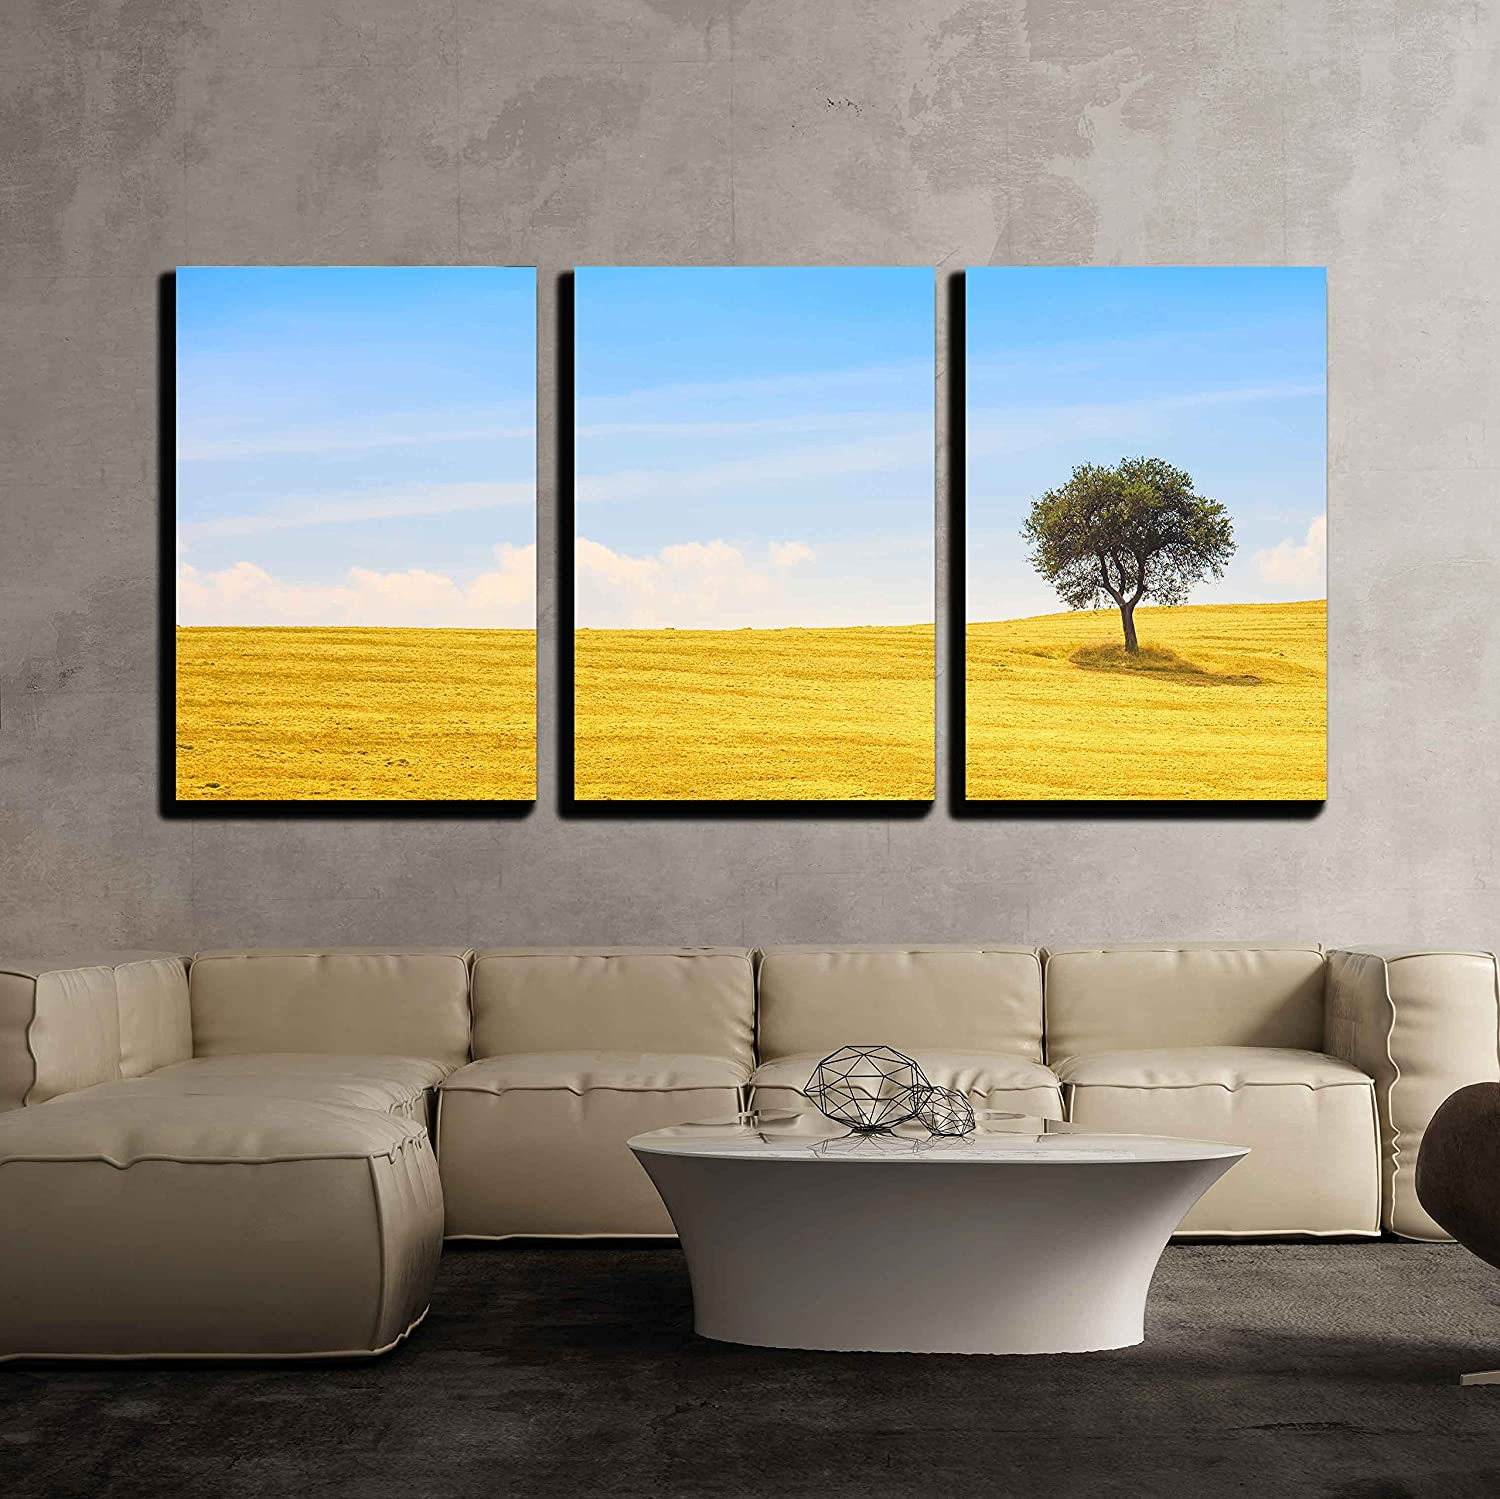 Wall26.com - Art Prints - Framed Art - Canvas Prints - Greeting ...